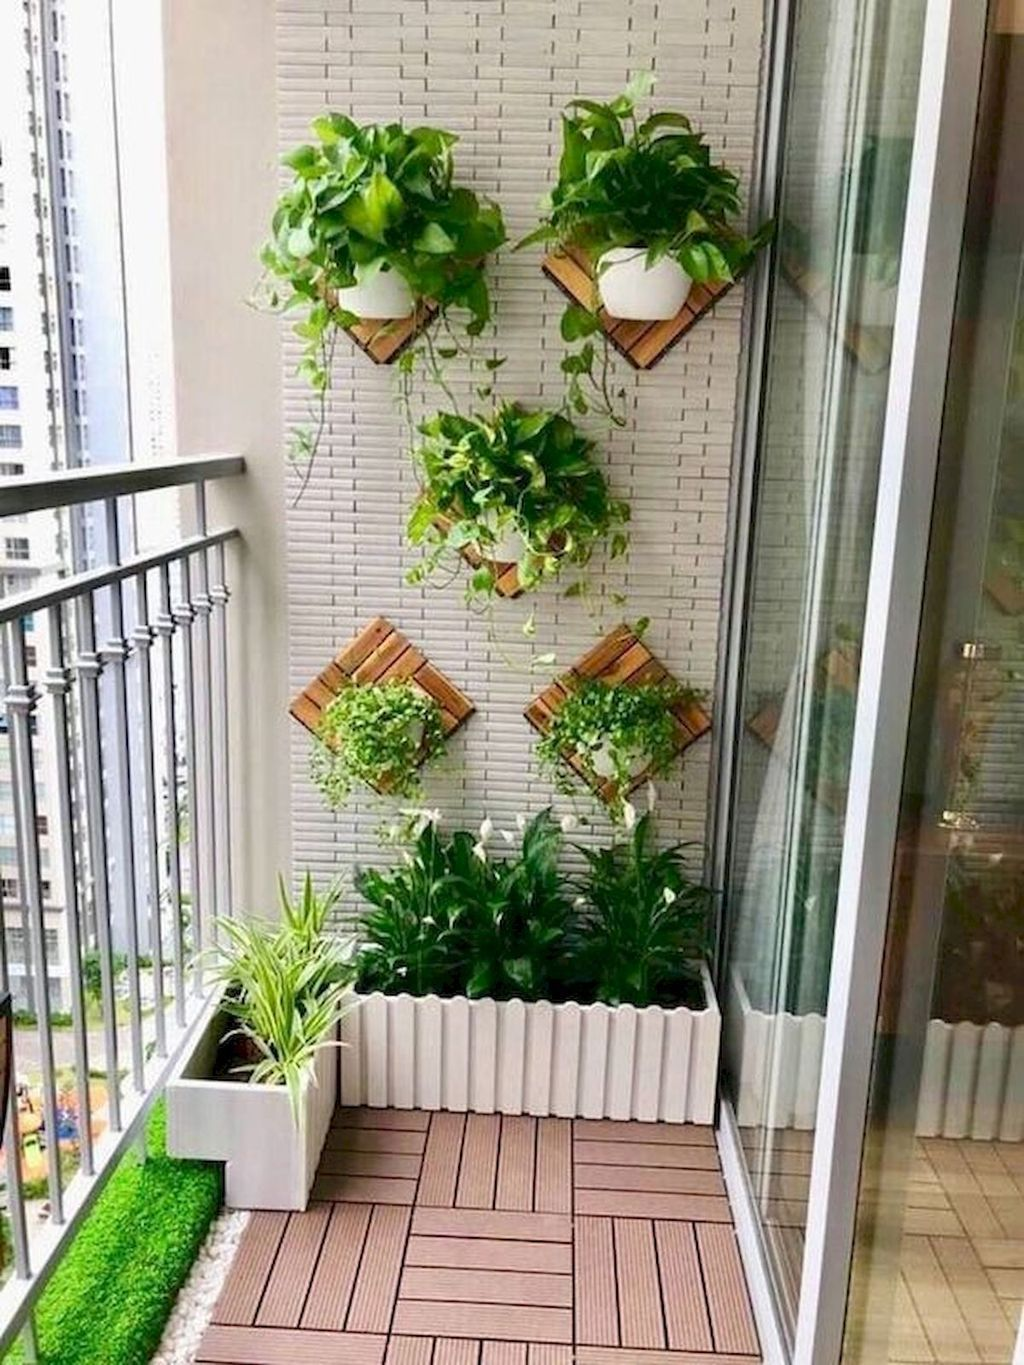 12 Small Apartment Balcony Garden Design Ideas  Small balcony